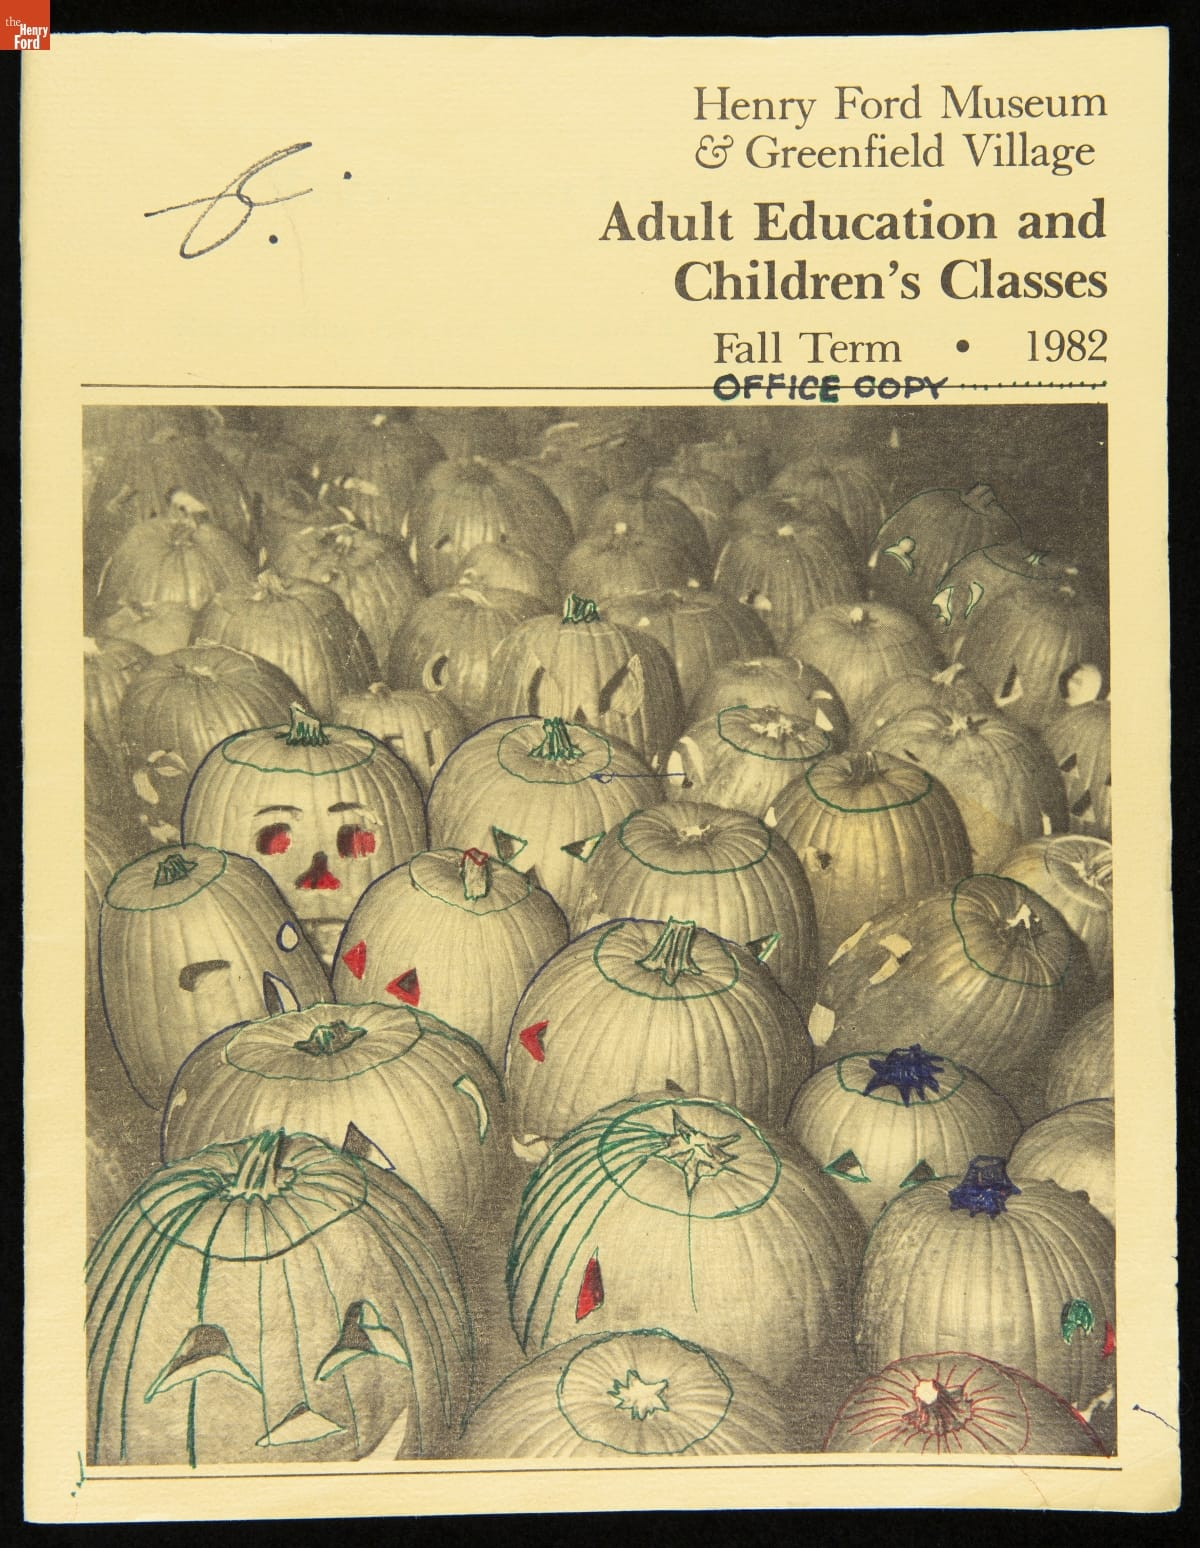 Black and white catalog cover with jack-o-lanterns, some of which have been doodled on